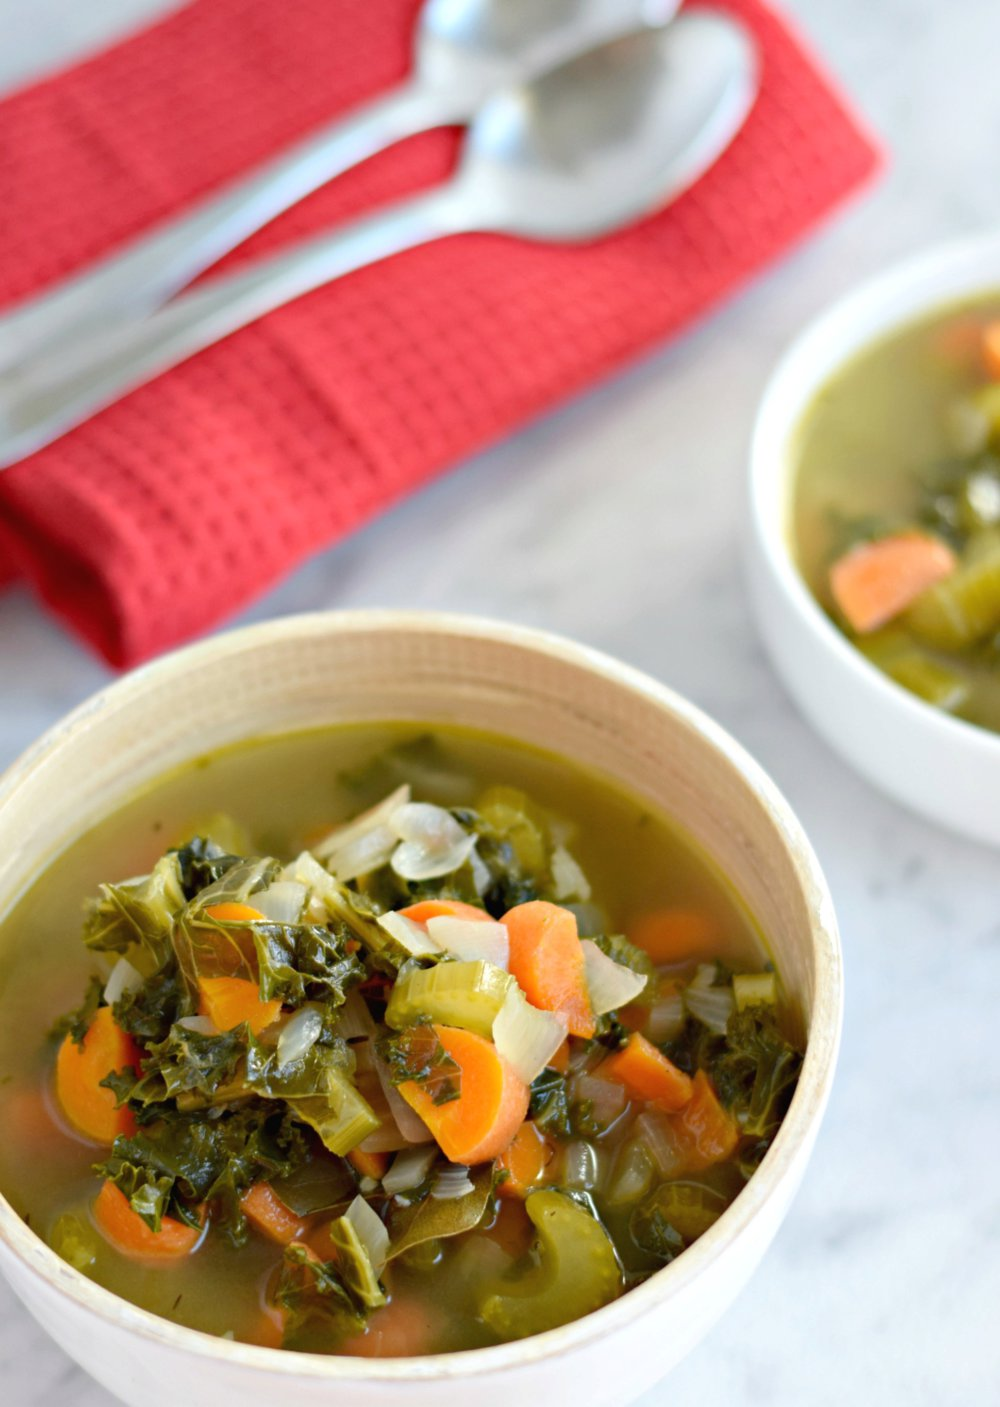 Winter Kale Vegetable Soup